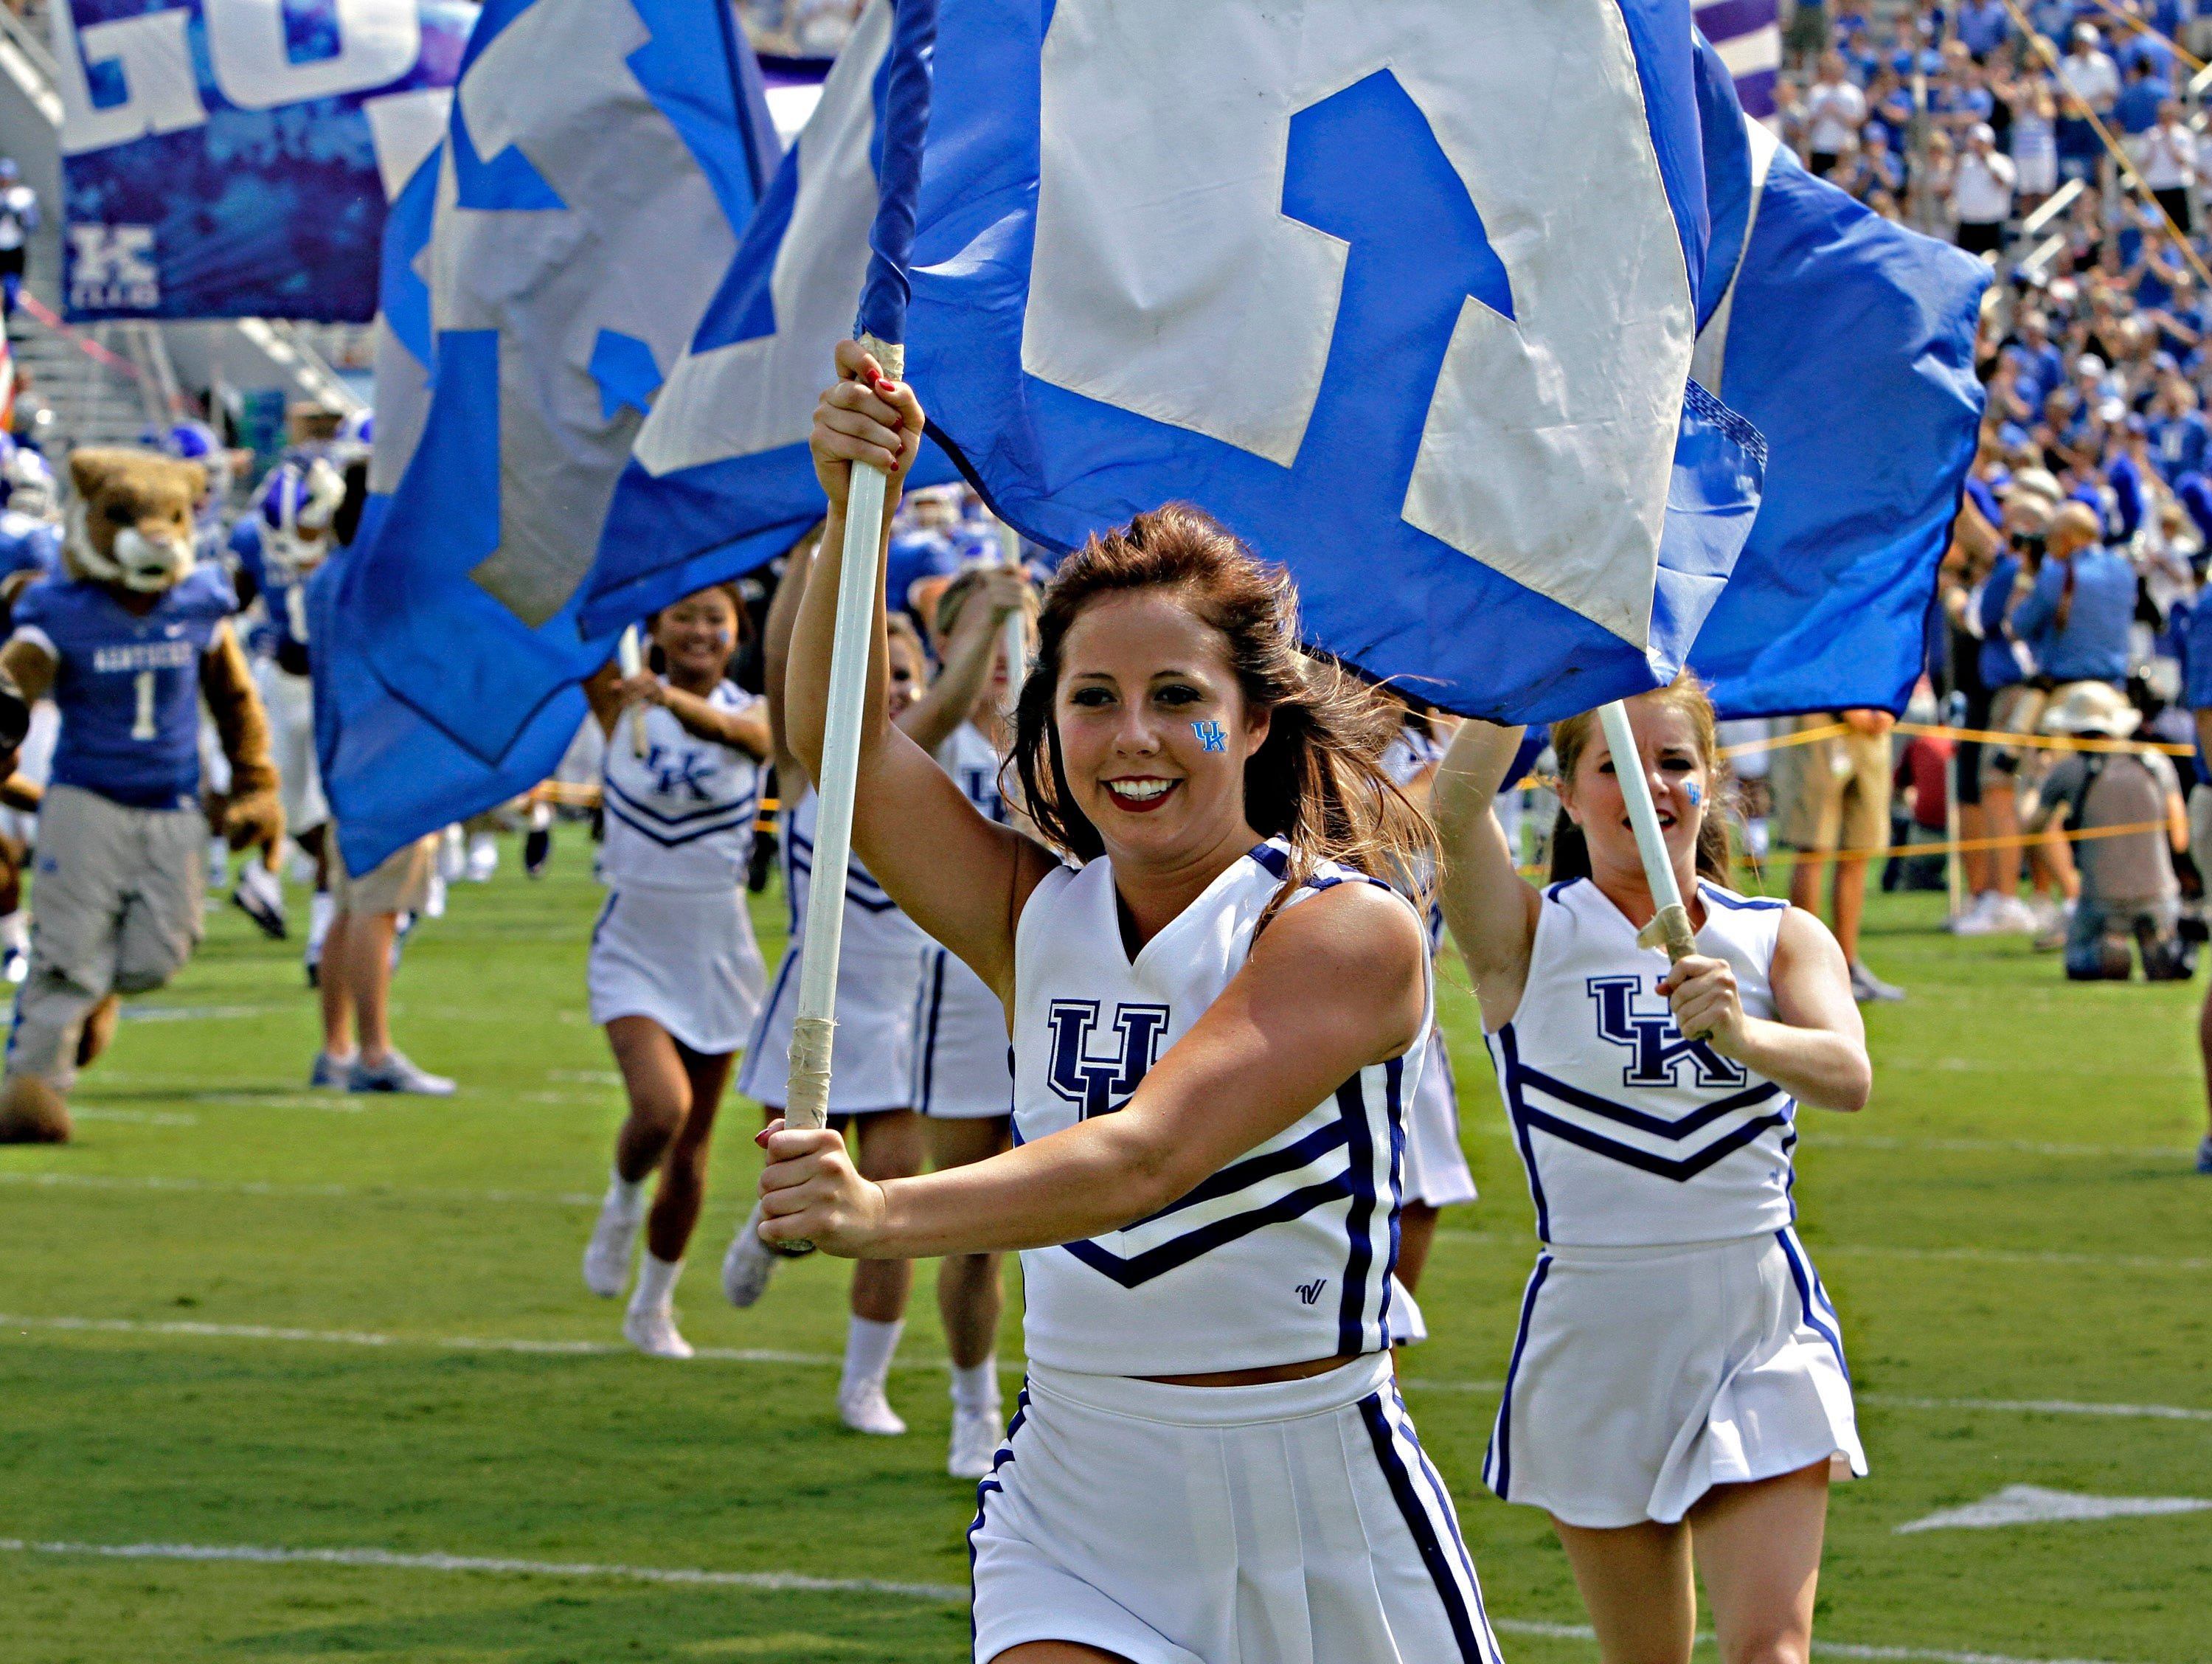 University of Kentucky cheerleaders lead the football team on to the field at Commonwealth Stadium before the start of a NCAA college football game against Tennessee-Martin in Lexington, Ky., Saturday, Aug. 30, 2014. (AP Photo/Garry Jones)